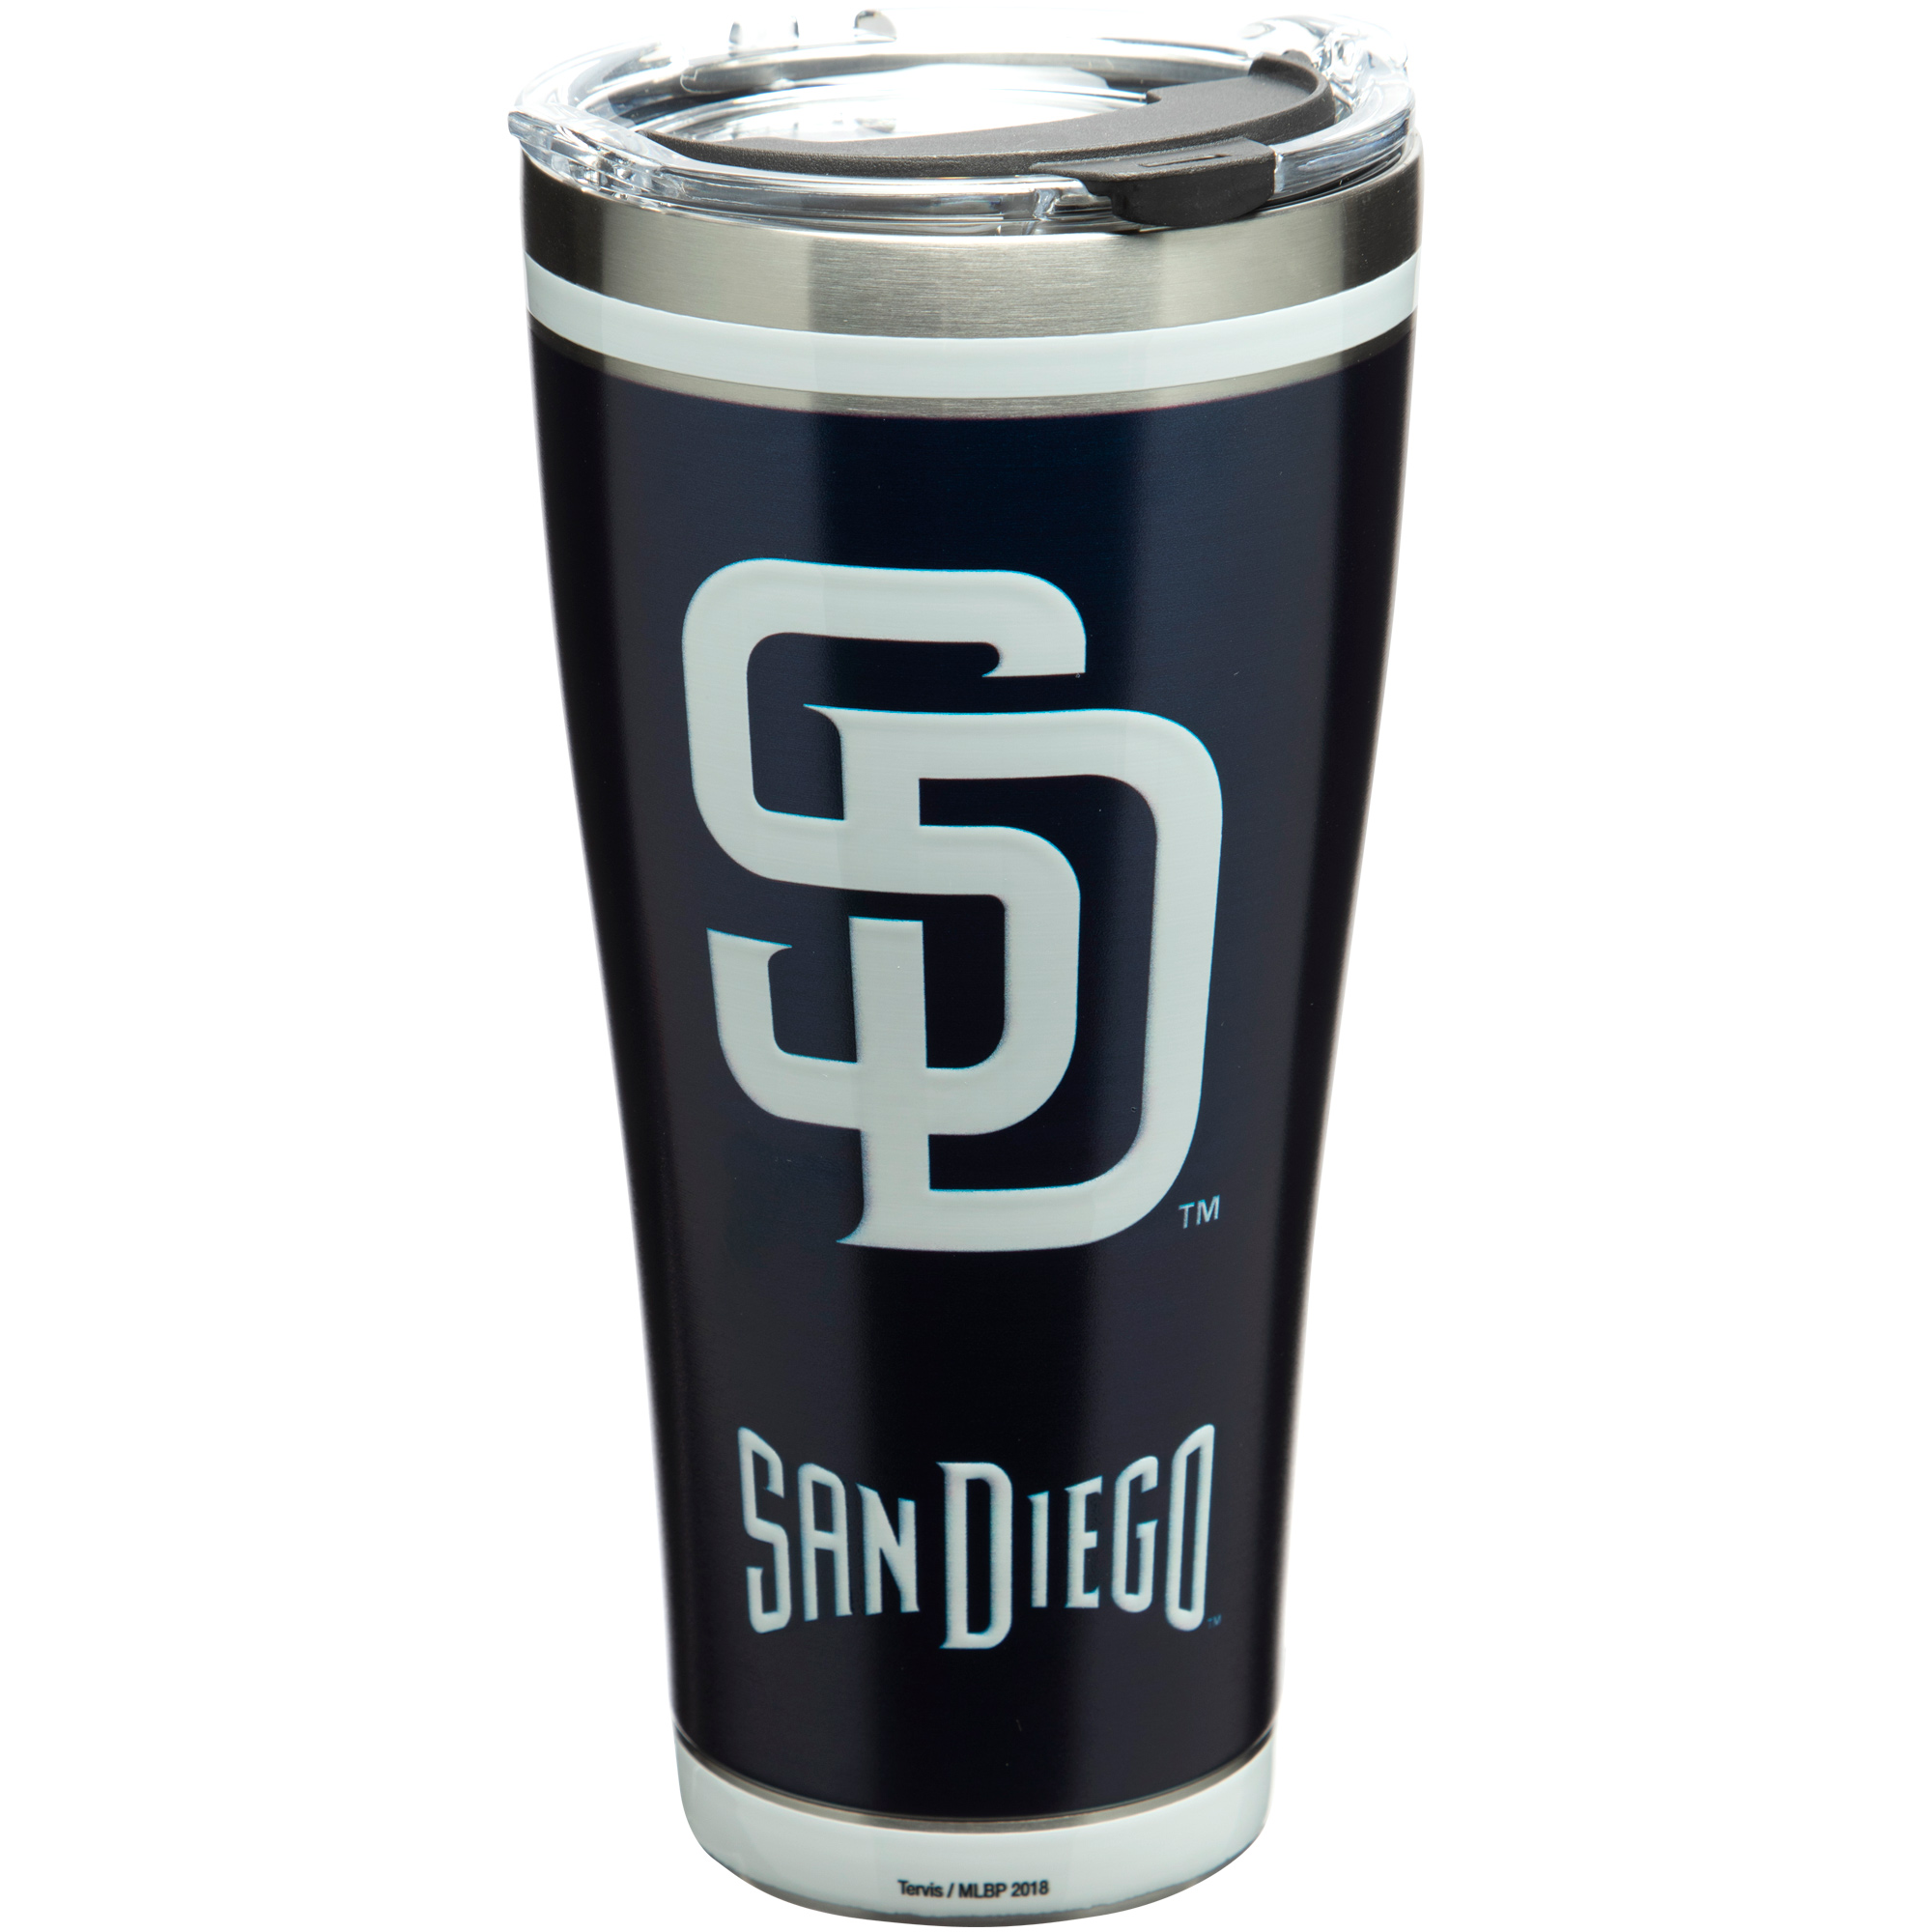 San Diego Padres Tervis 30oz. Stainless Steel Tumbler - No Size